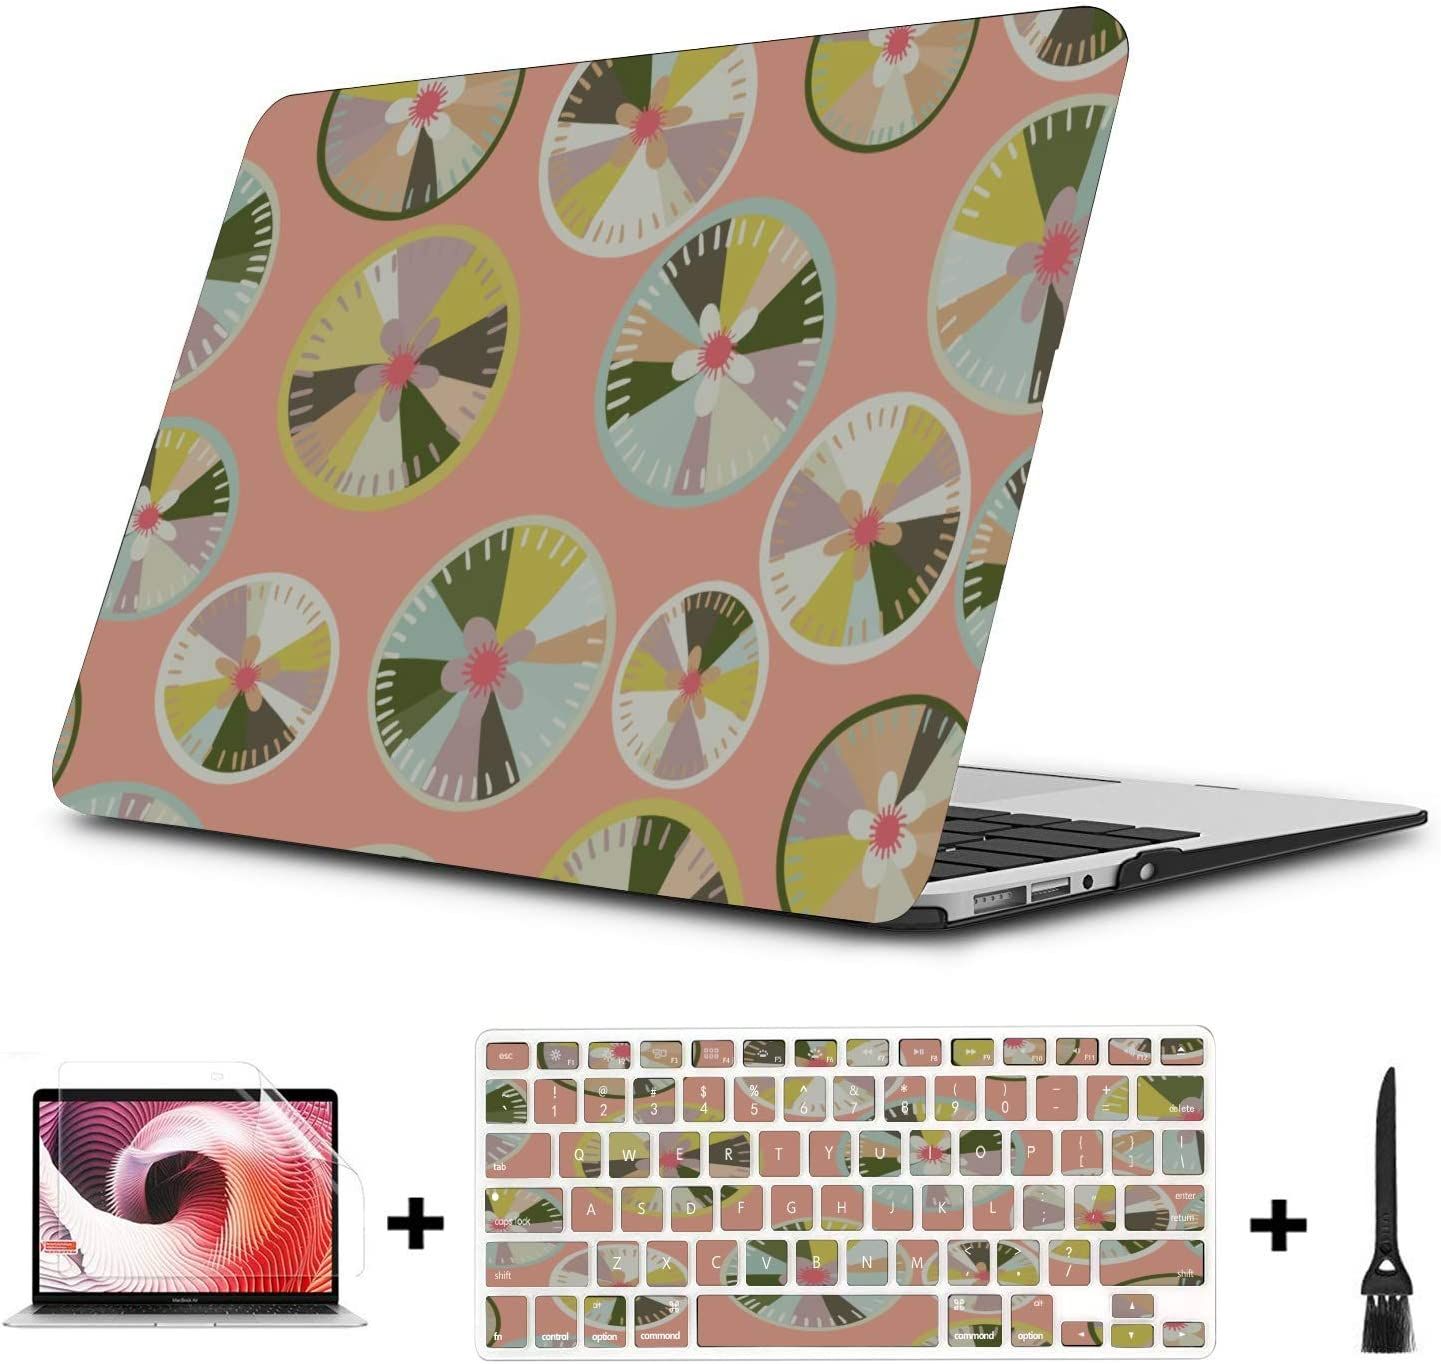 MacBook Pro Accessories Summer Fashion Flower Fruit Lemon Plastic Hard Shell Compatible Mac Air 11 Pro 13 15 Laptop Cover Protection for MacBook 2016-2019 Version